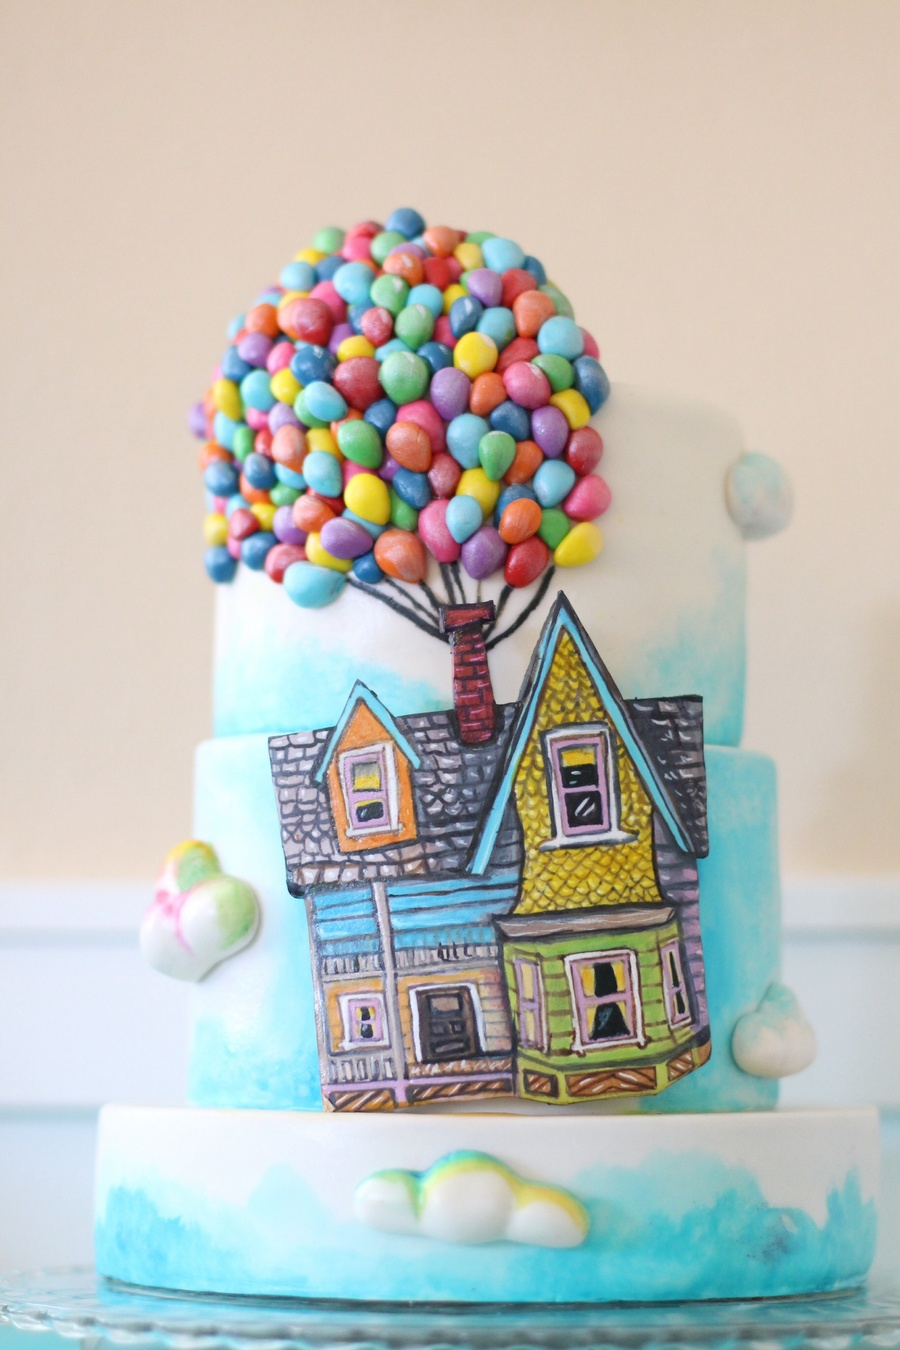 Tiny Phone For Cake Decorating